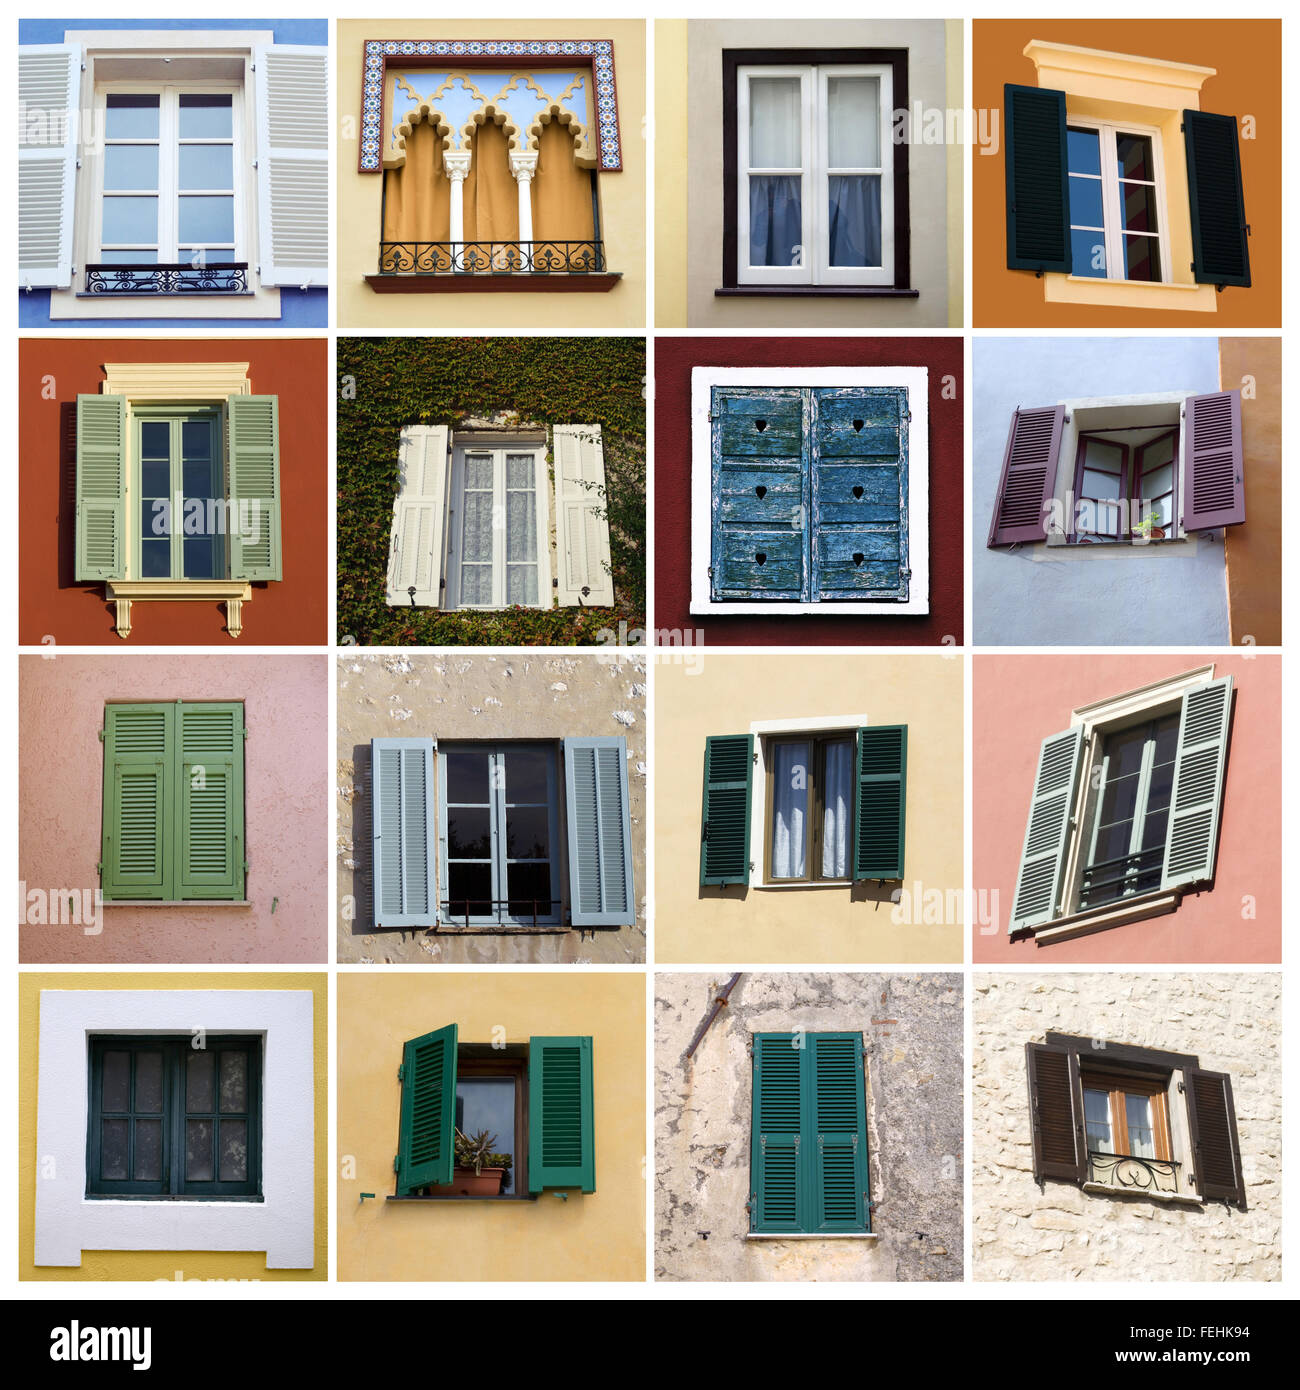 Mediterranean Style Windows Viendoraglass Com: Old-fashioned Windows In Mediterranean Style Stock Photo